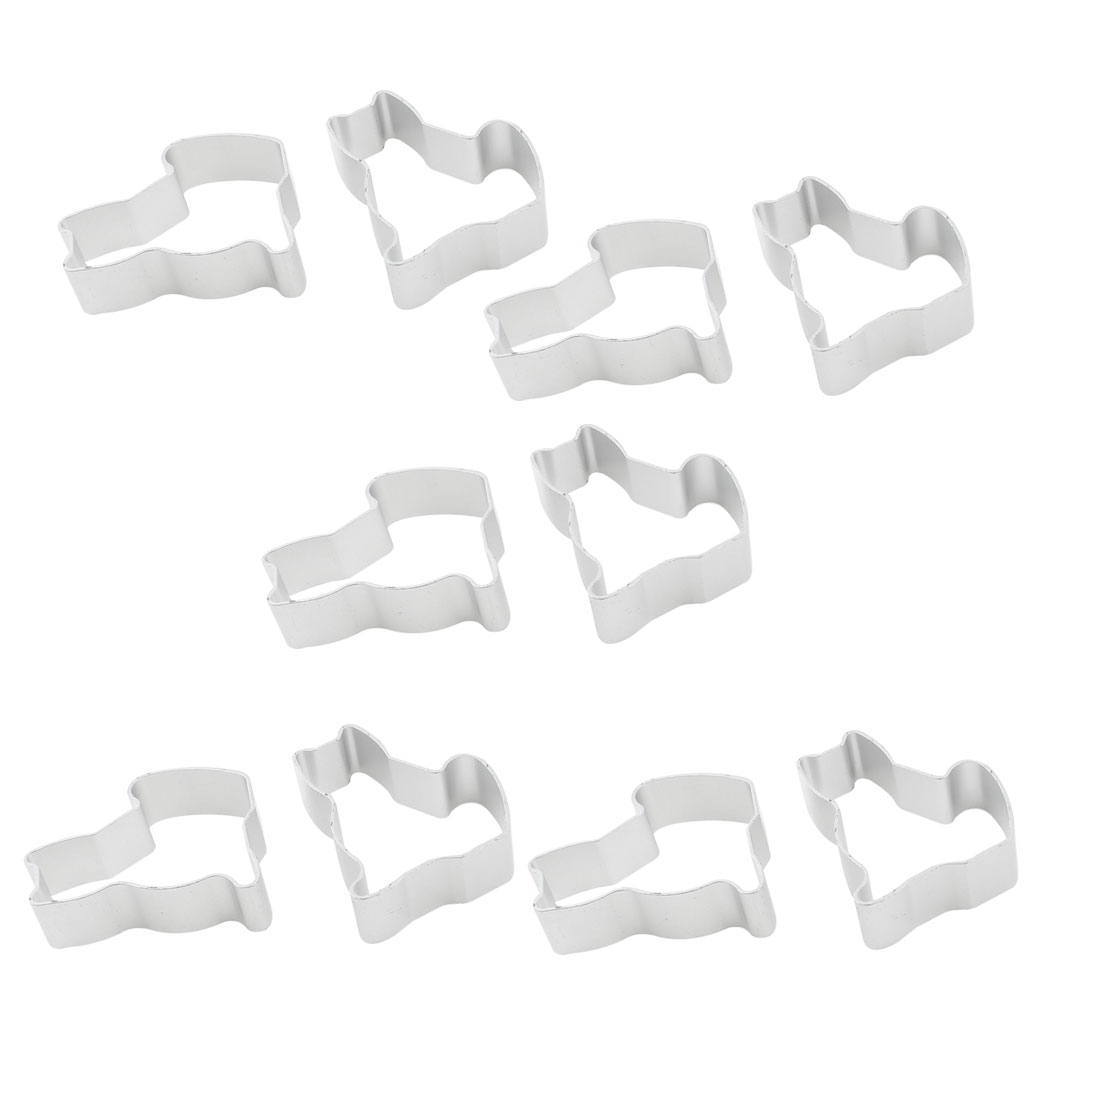 Cat Shaped Cookie Biscuit Cake Bread DIY Baking Cutter Mold Silver Tone 10pcs